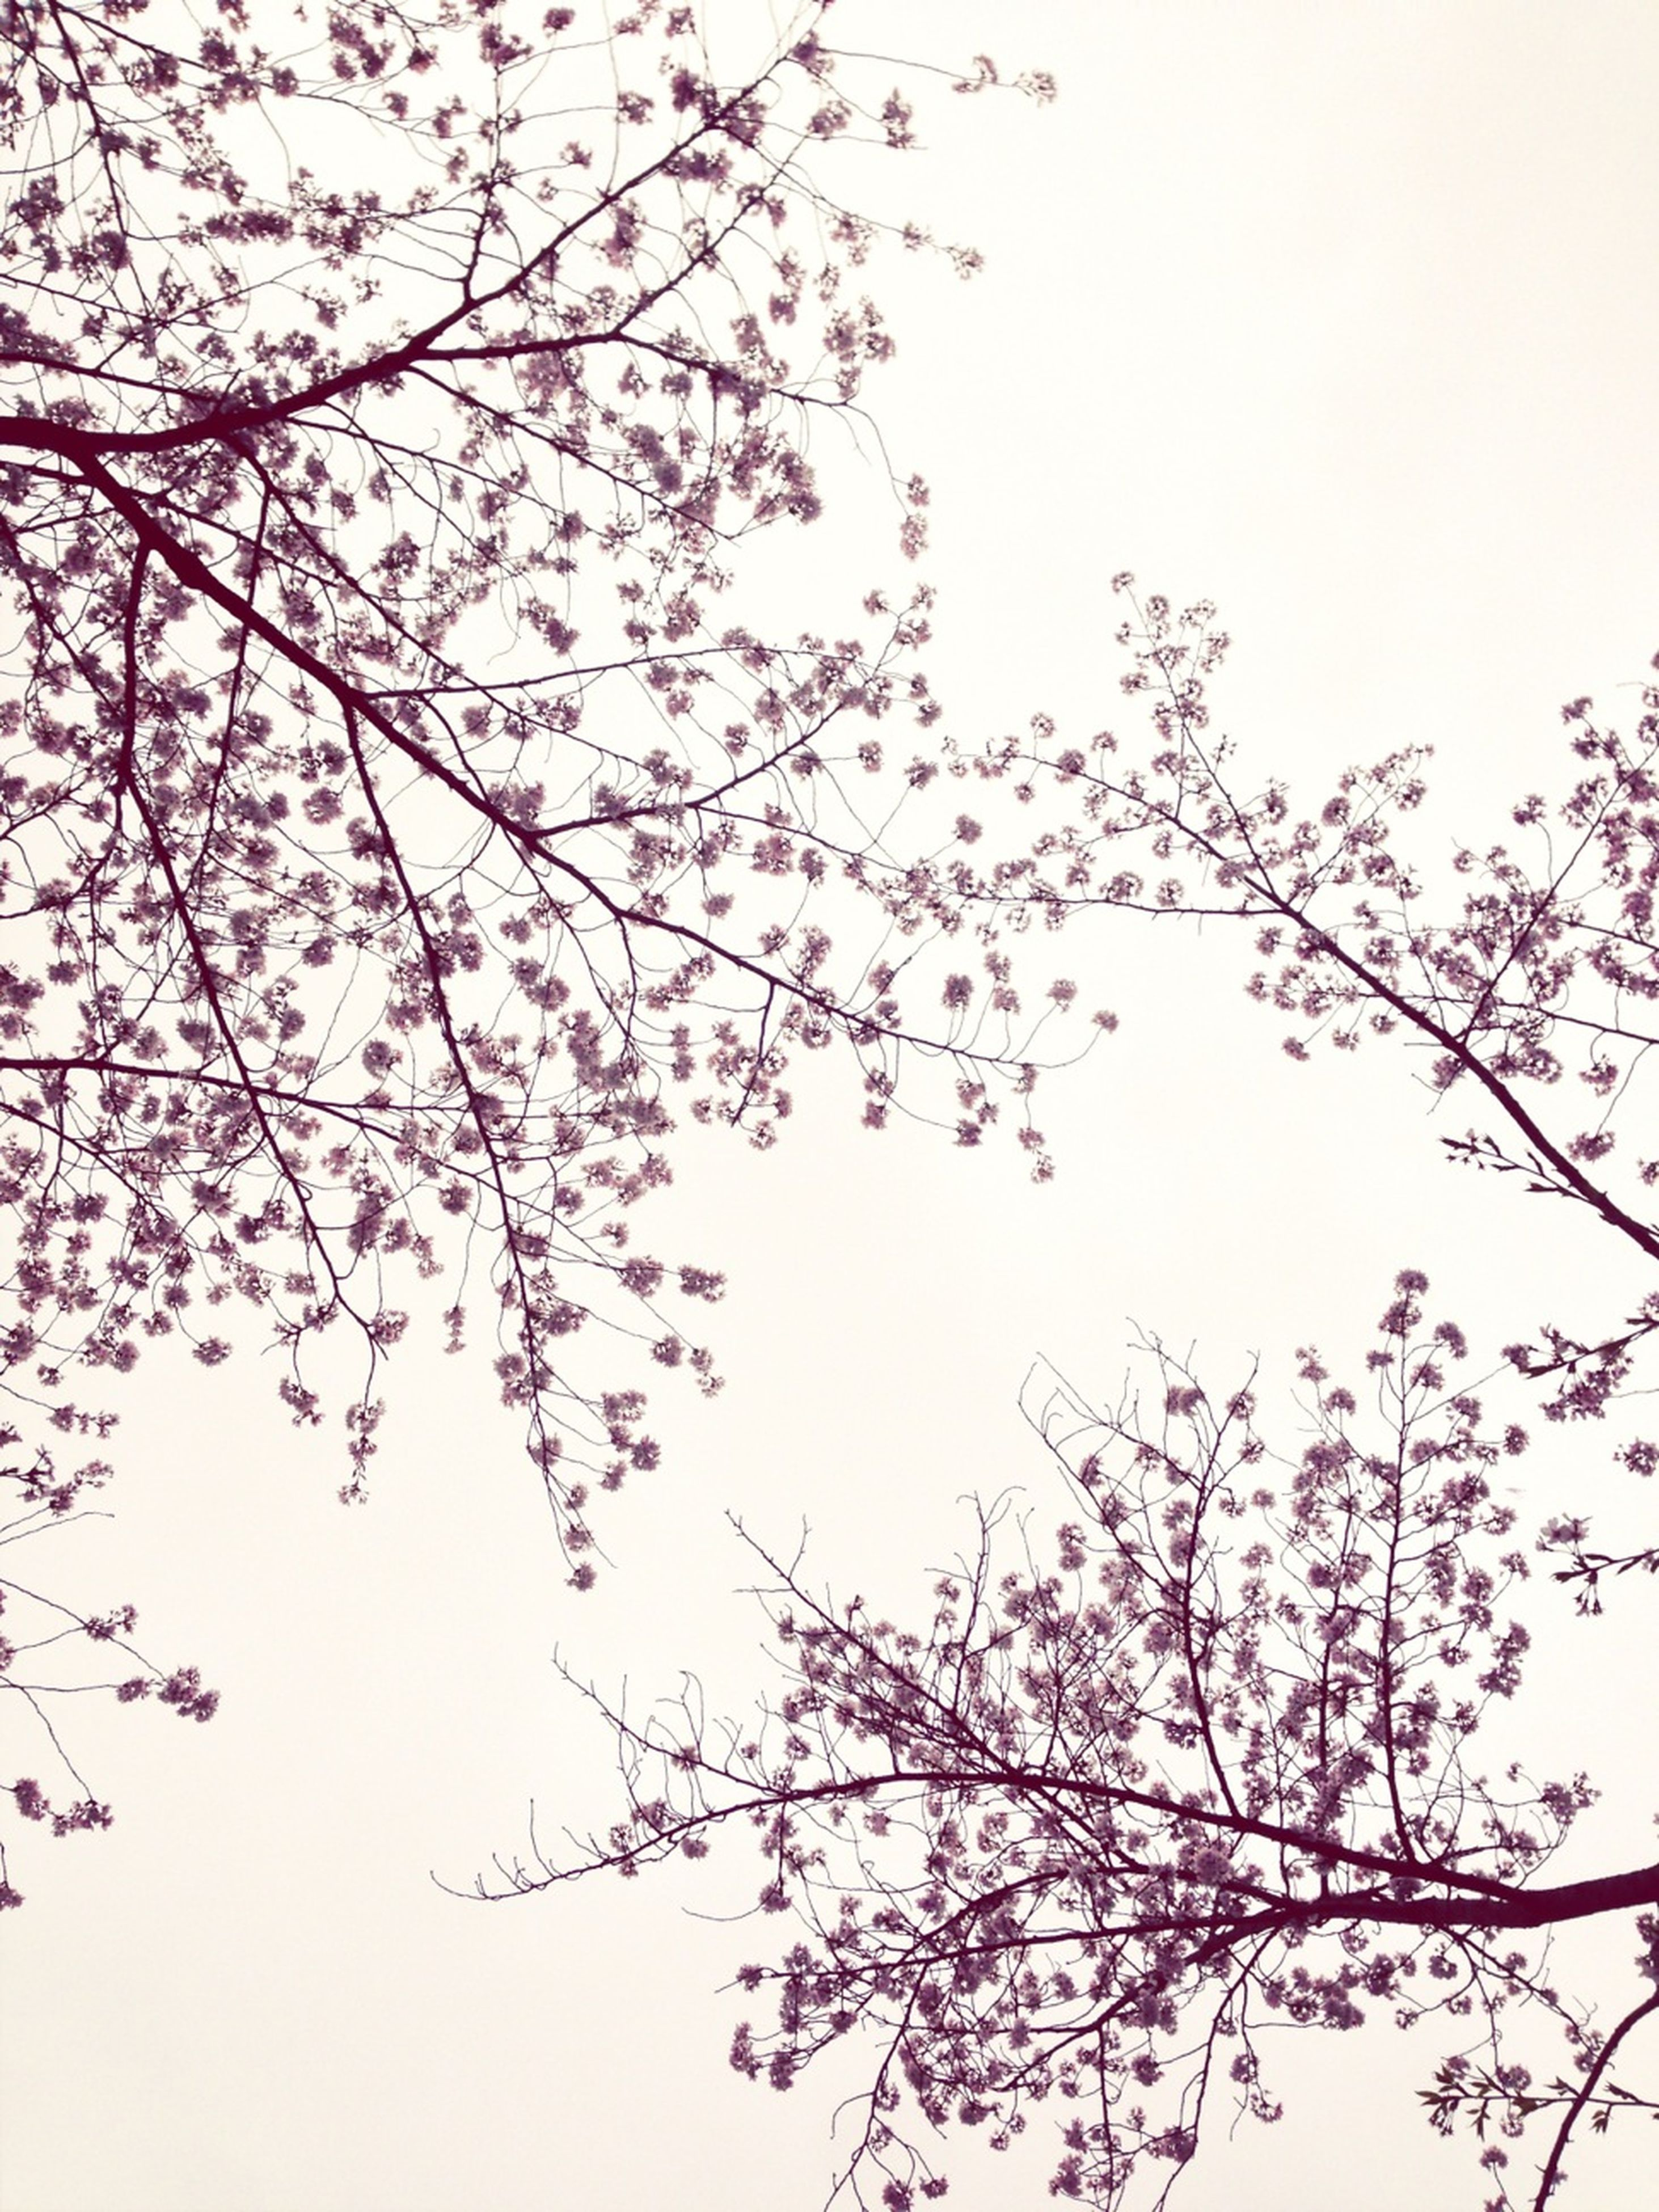 flower, low angle view, branch, tree, clear sky, growth, beauty in nature, freshness, nature, fragility, blossom, sky, pink color, blooming, day, outdoors, copy space, springtime, no people, in bloom